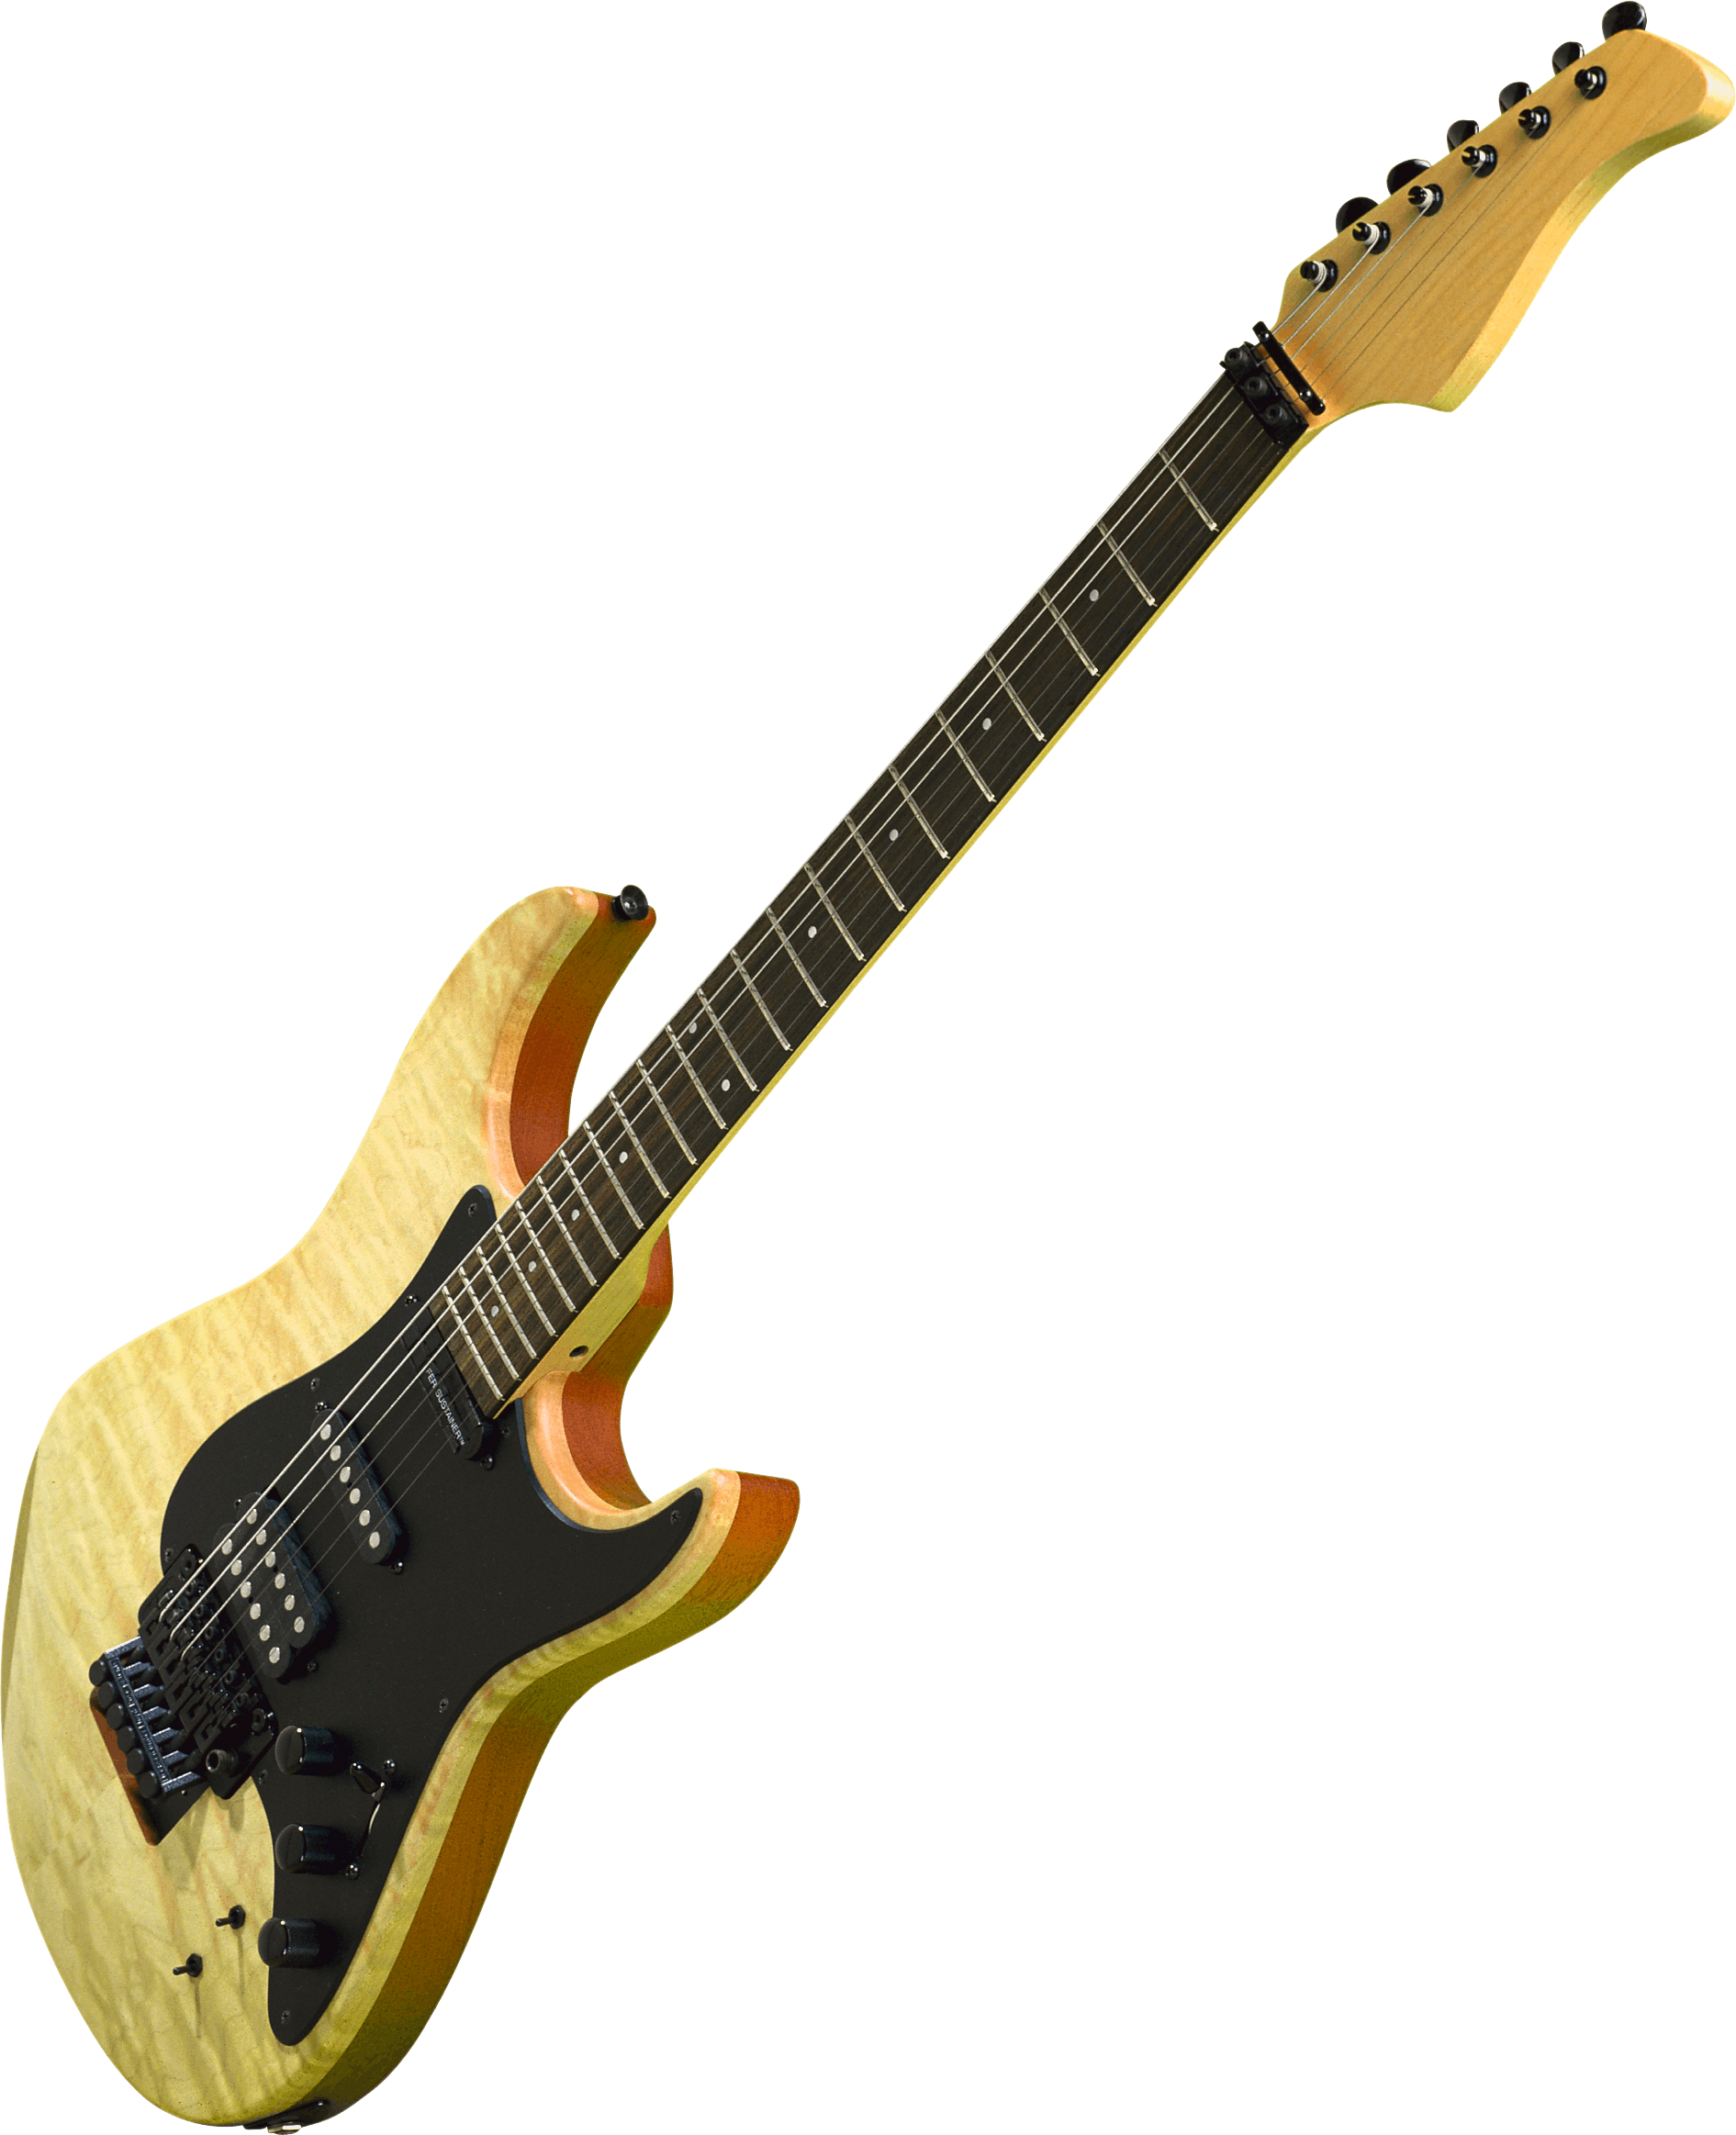 Brown and Black Electric Guitar Illustration